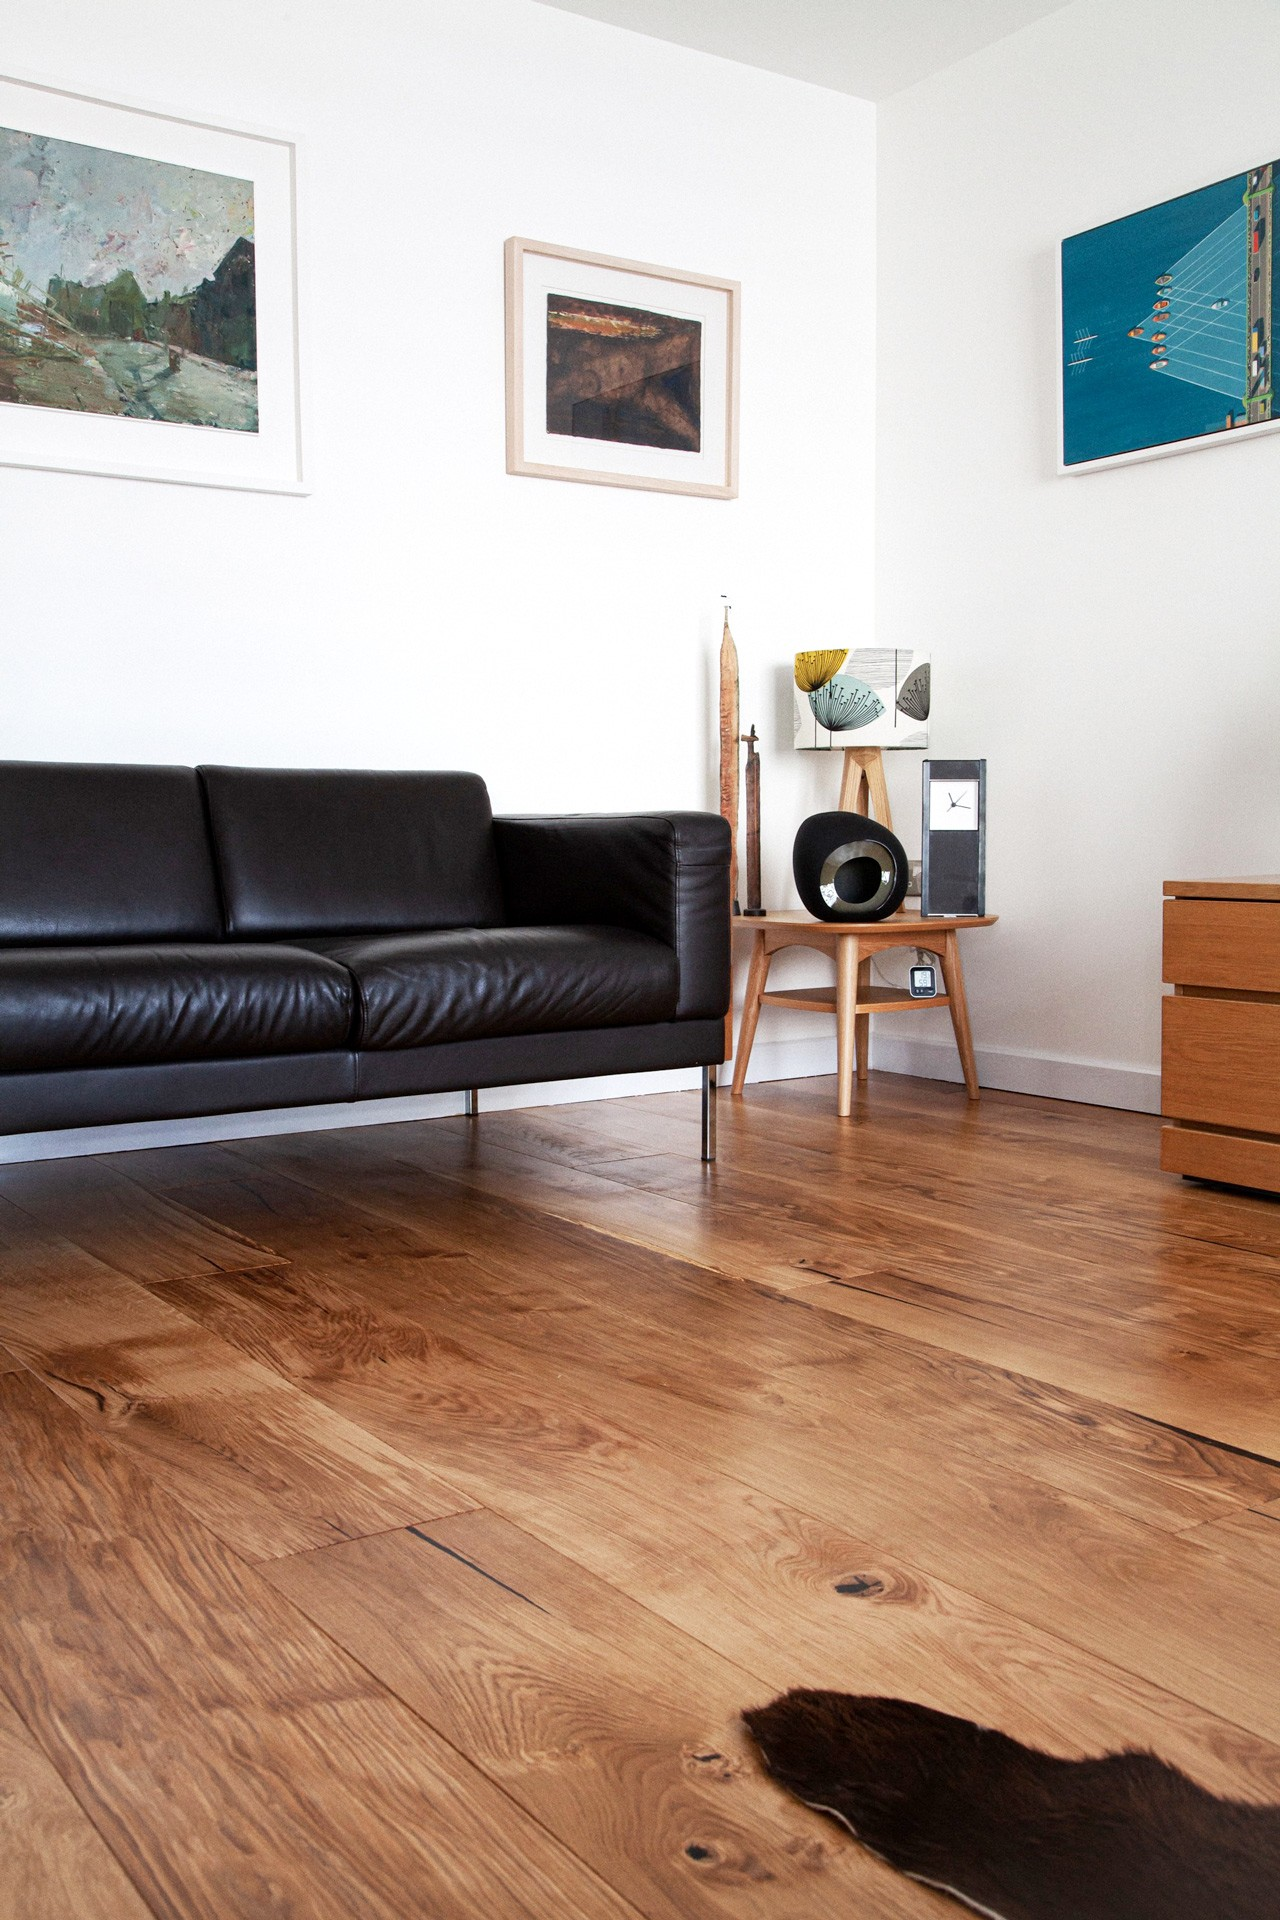 Back to St Agnes, Tregothnan oak flooring